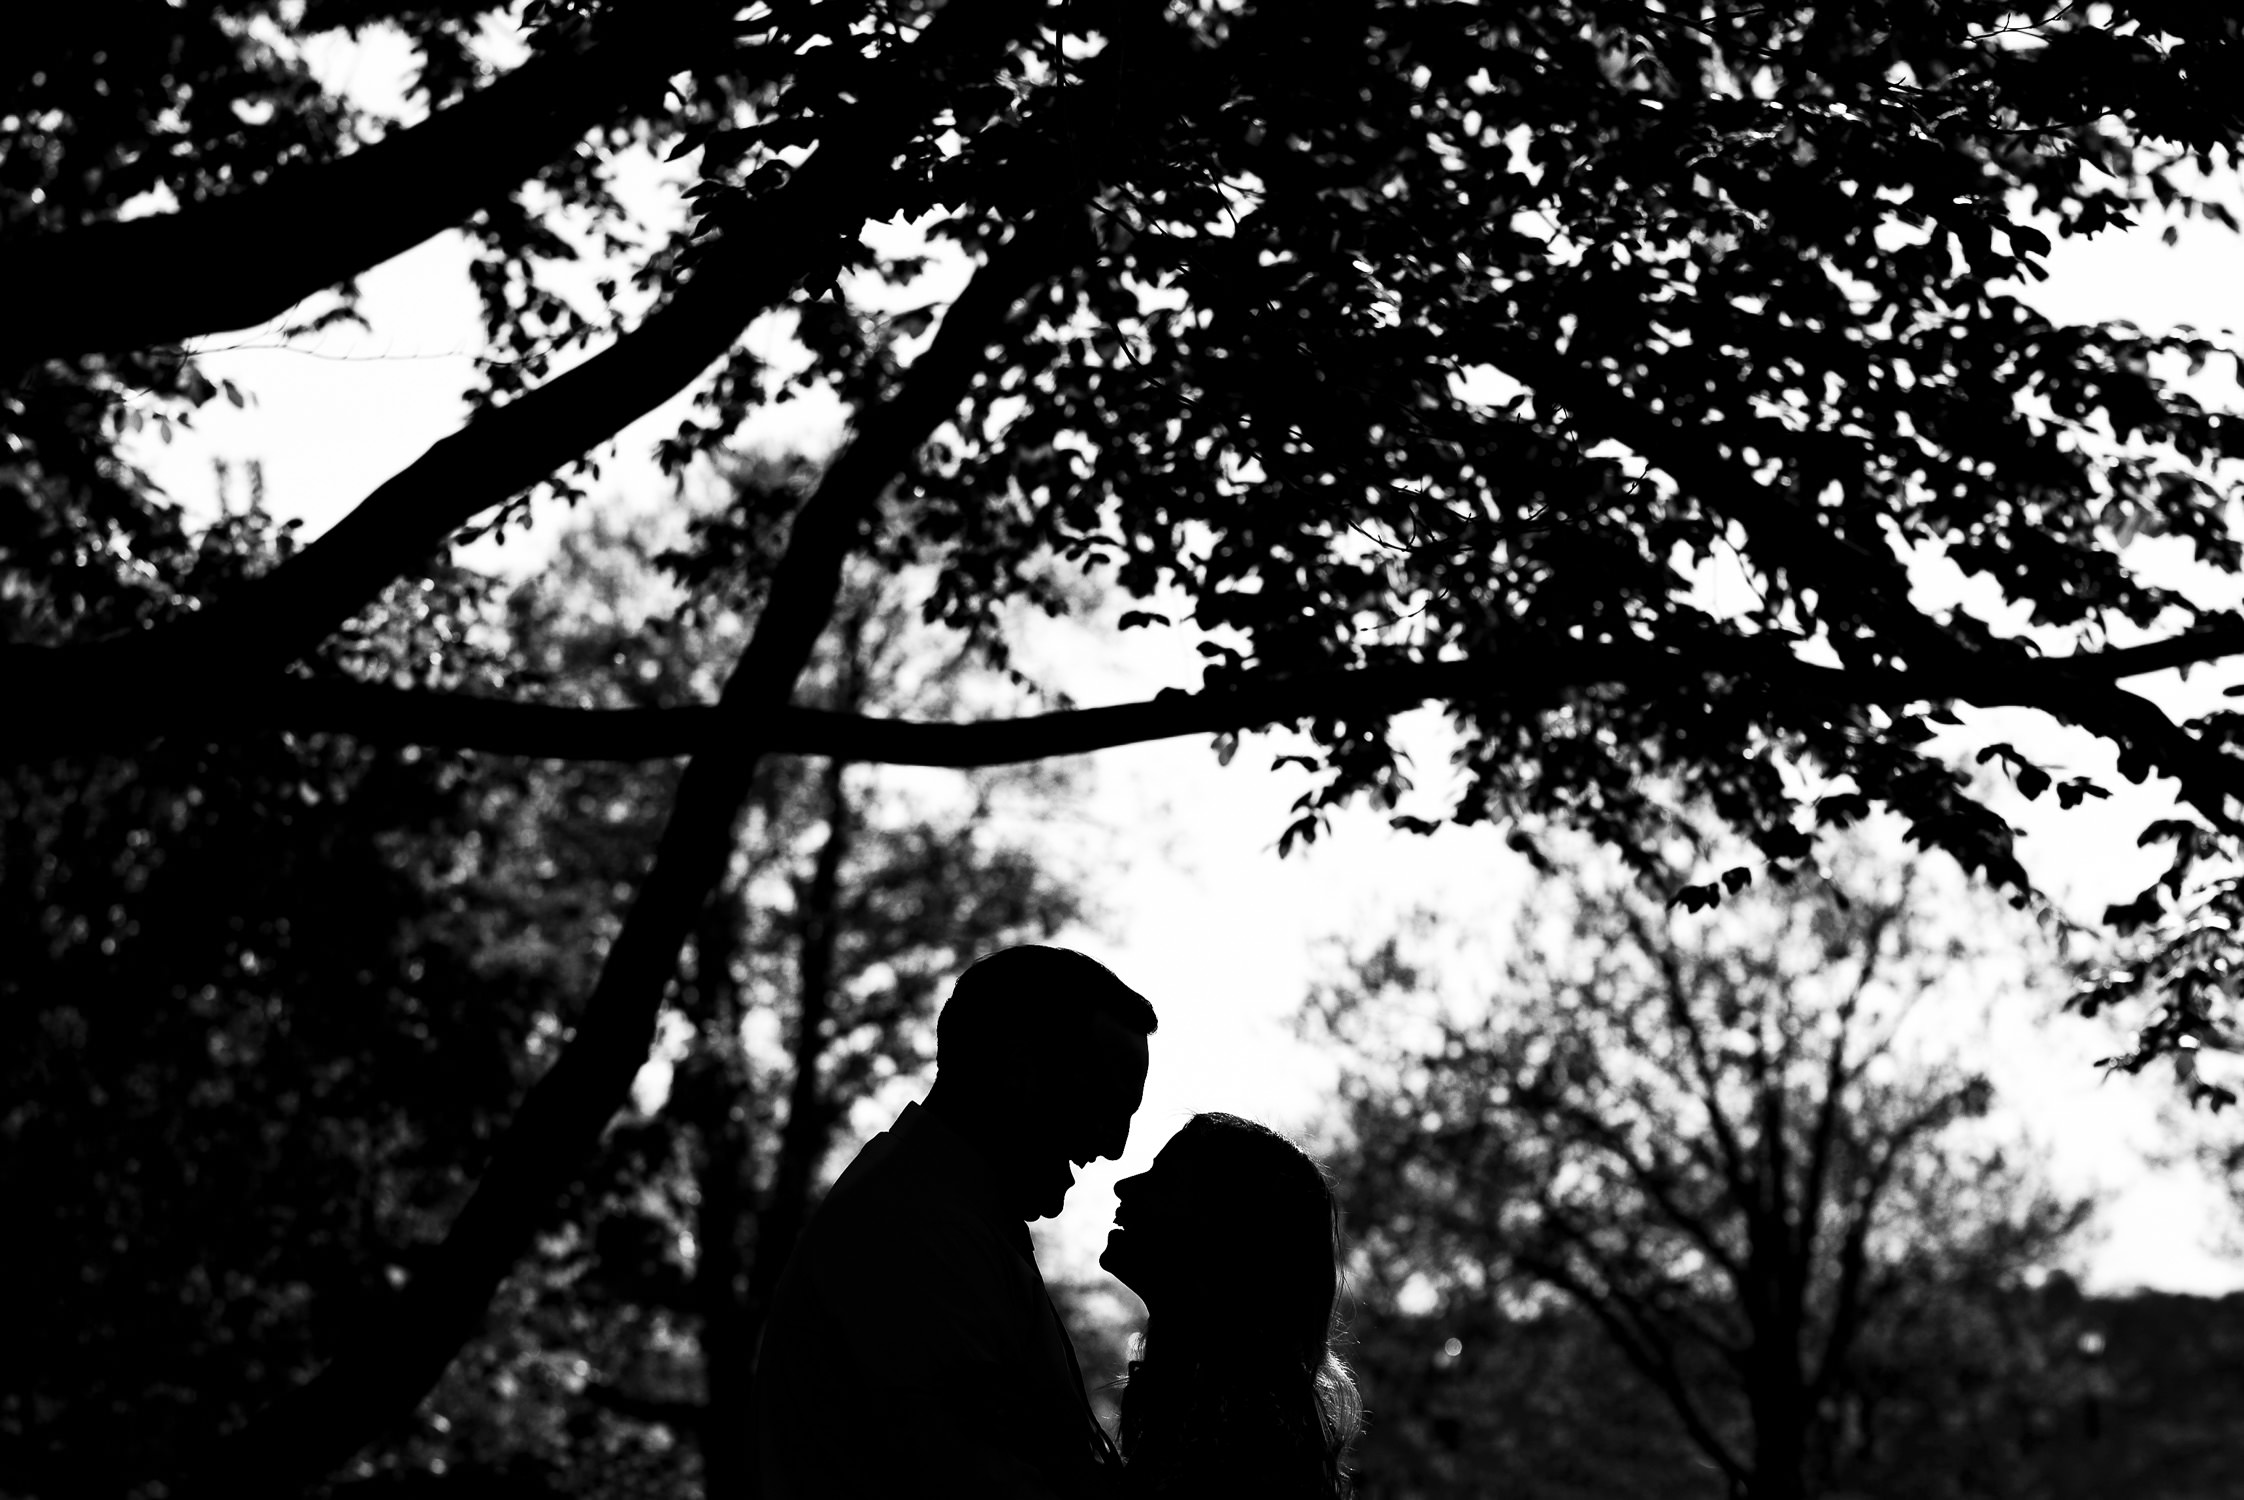 A silhouette of a couple laughing open mouth underneath a tree